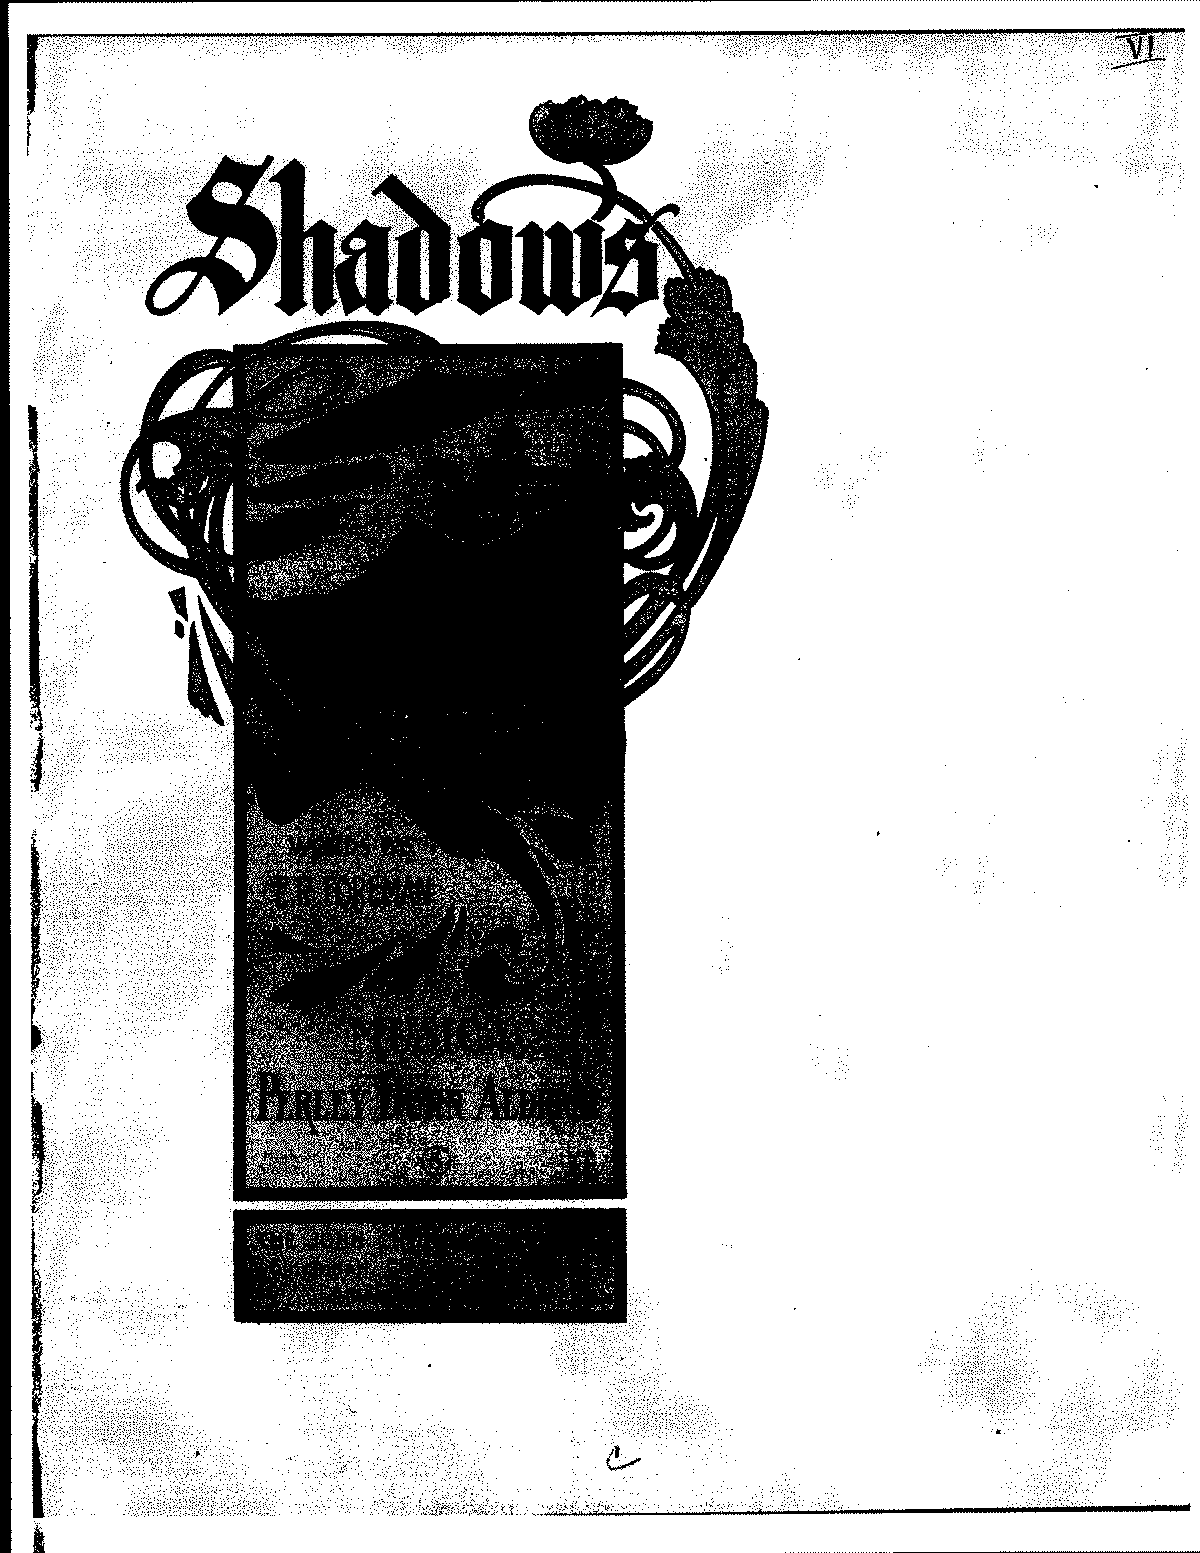 PMLP226880-sibley.1802.1608.Aldrich Shadows cropped.pdf